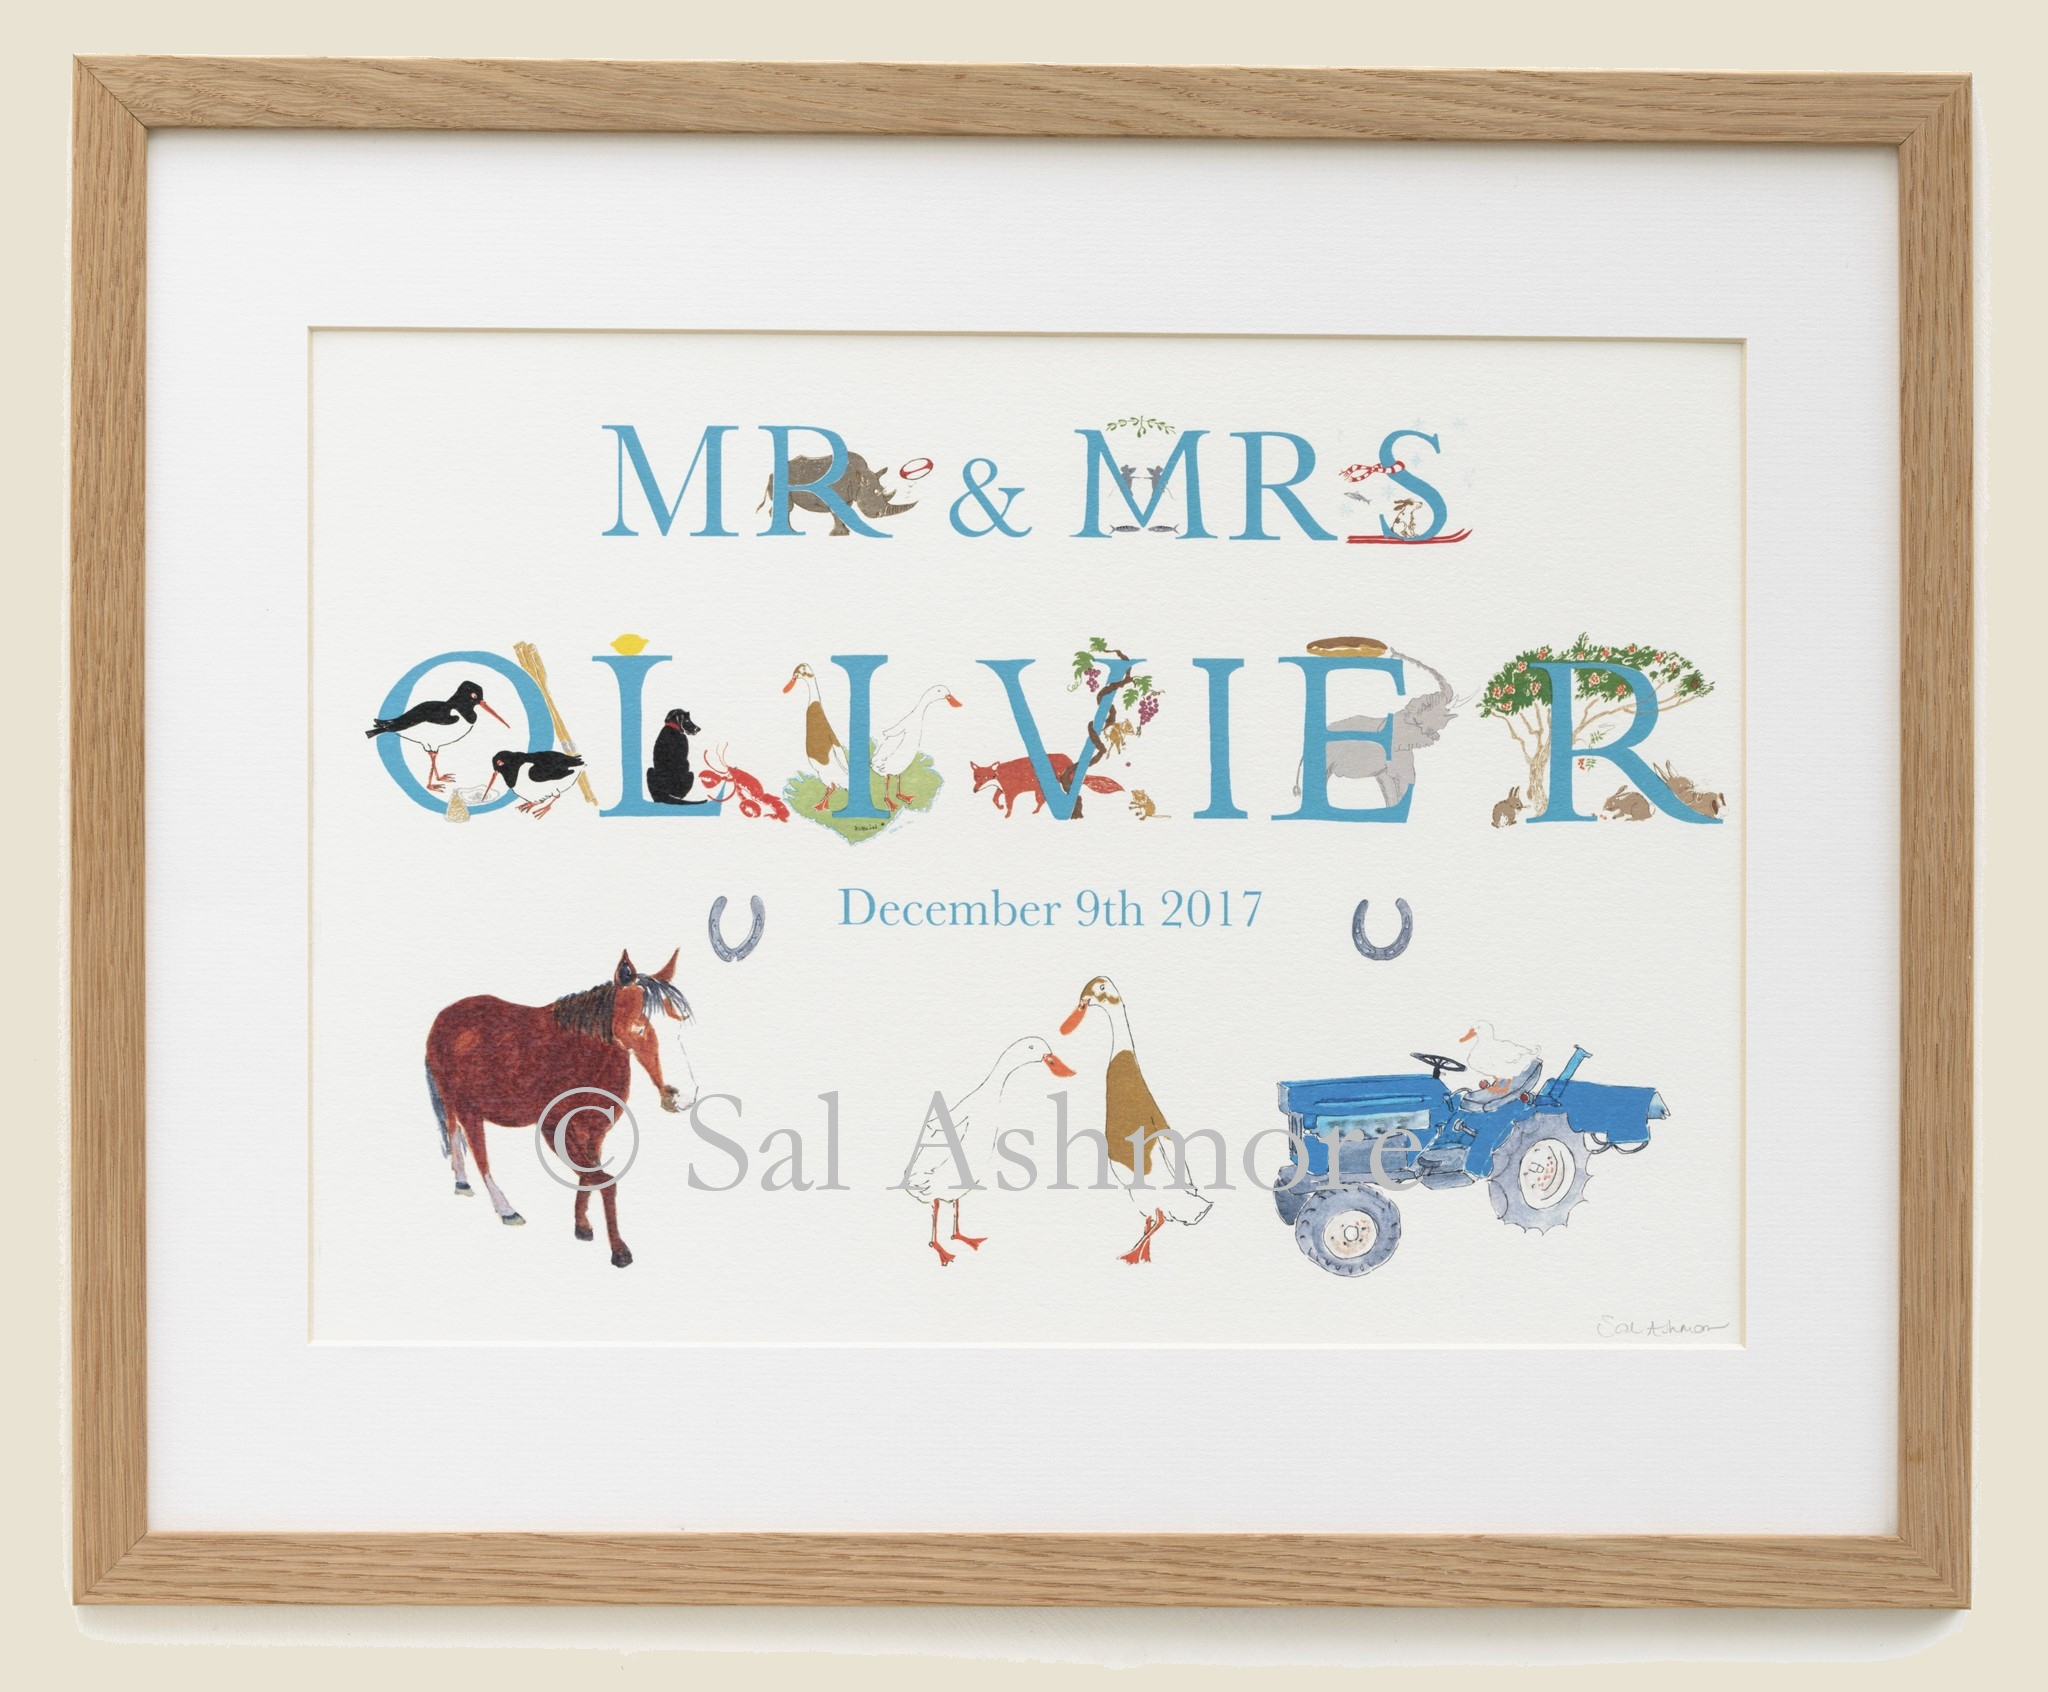 Personalised print to celebrate a wedding